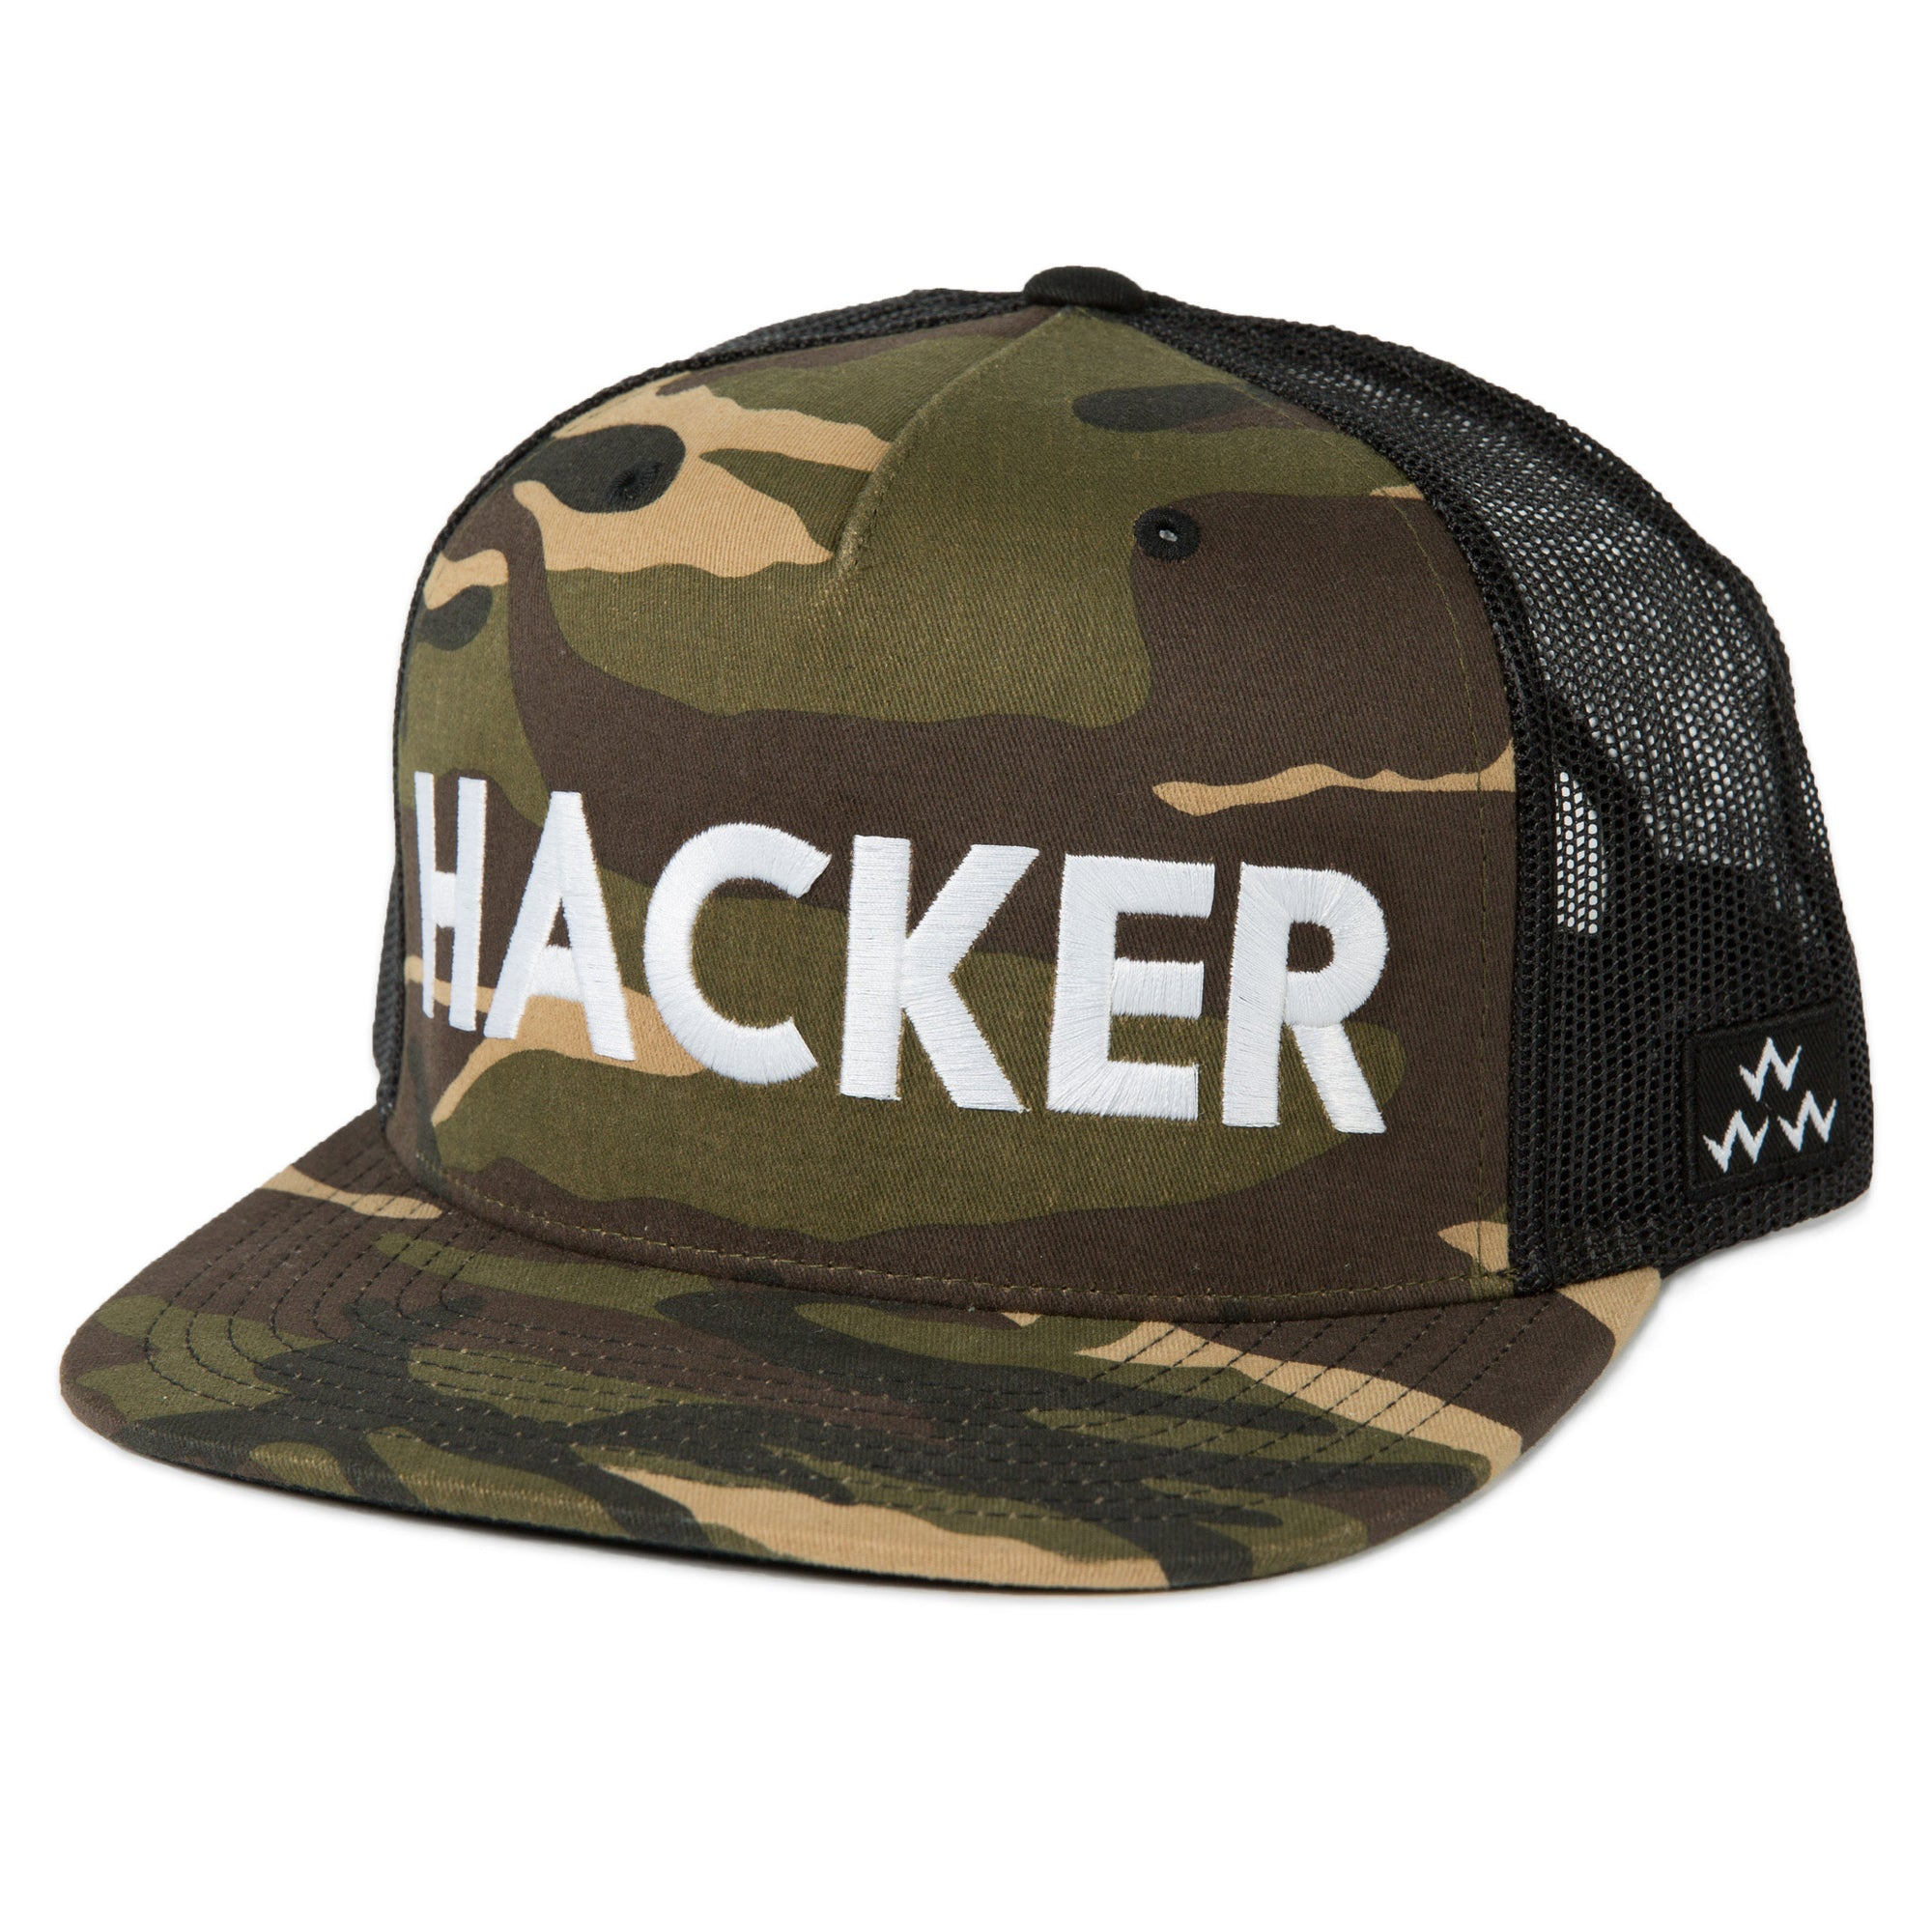 birds-of-condor-camo-golf-hacker-trucker-hat-cap-front